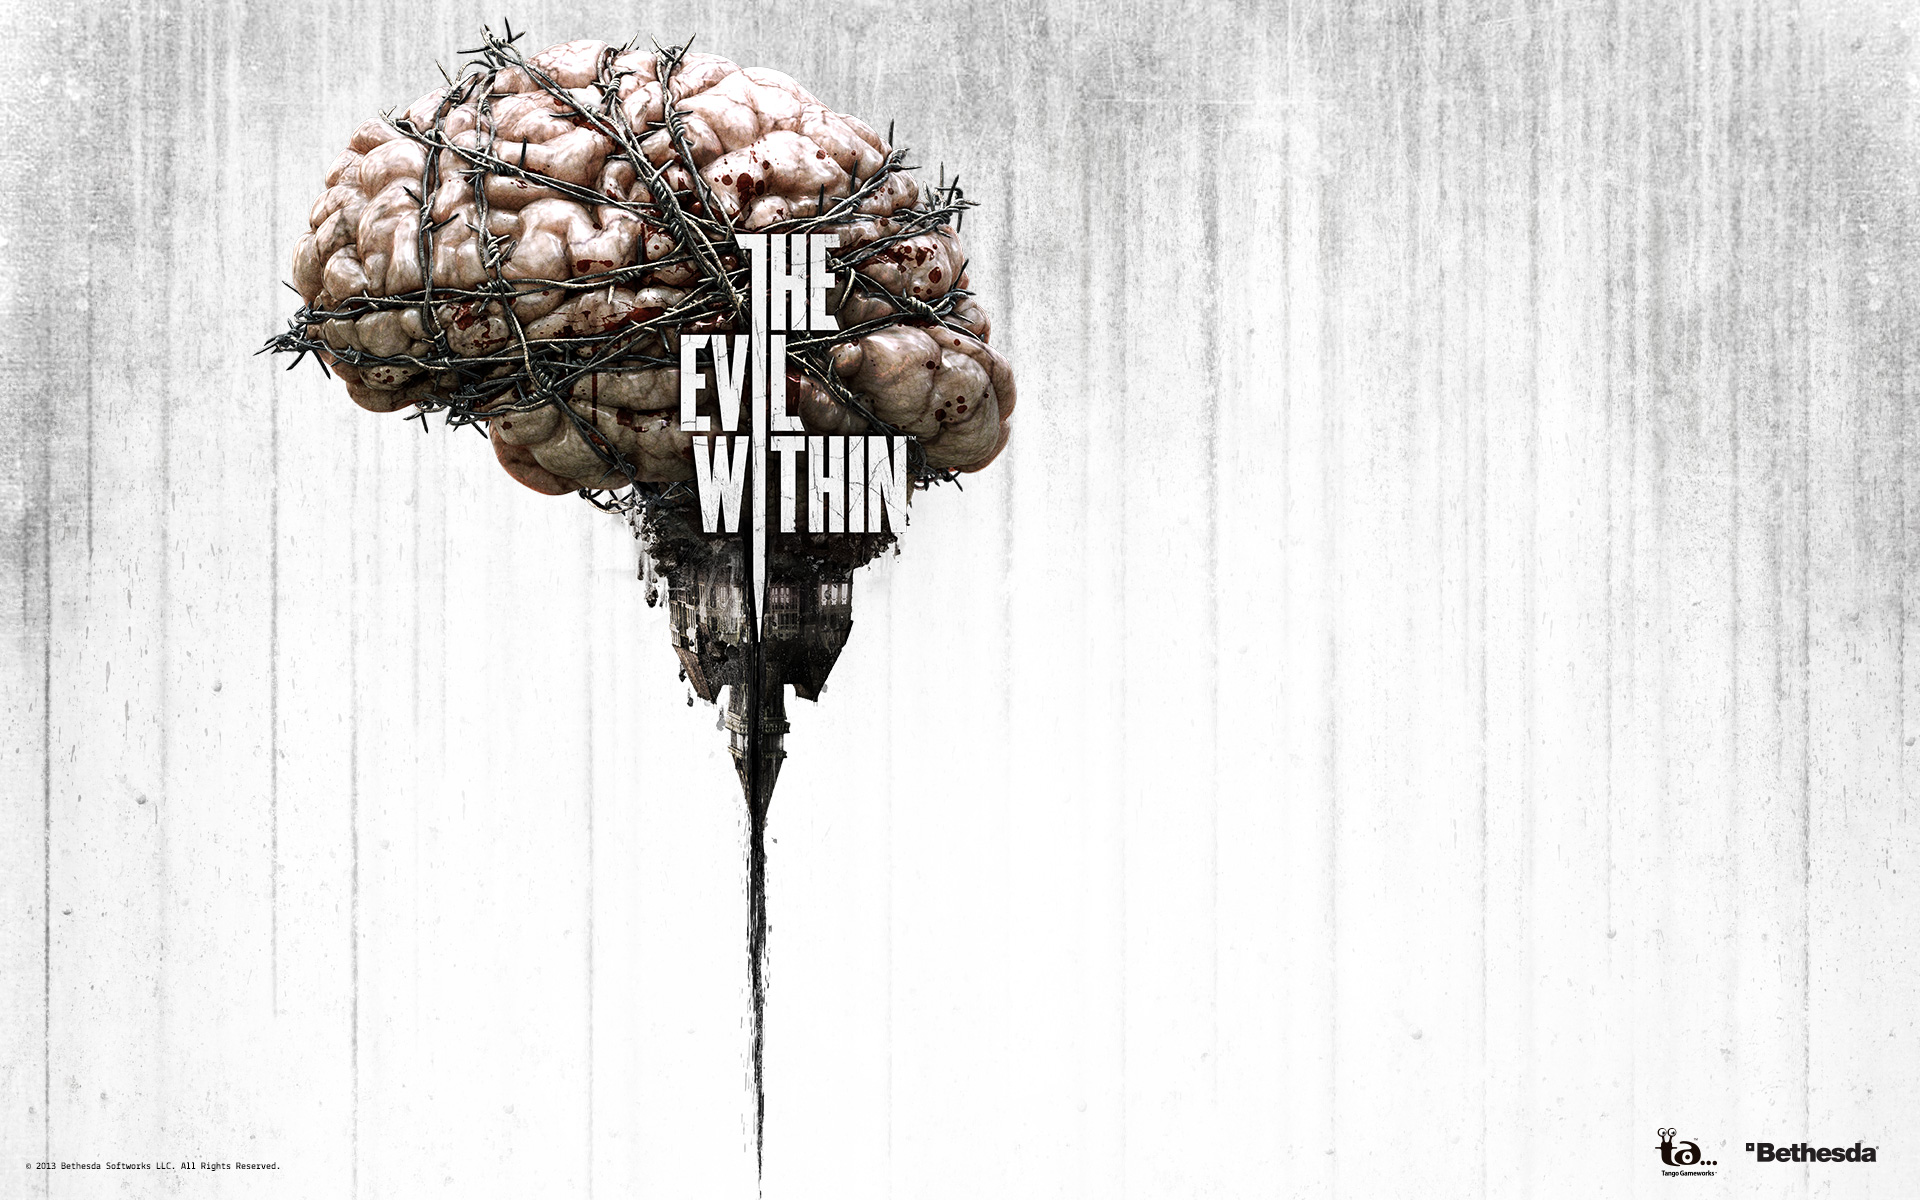 The Evil Within Wallpapers: The Evil Within Teaser Trailer « Icrontic